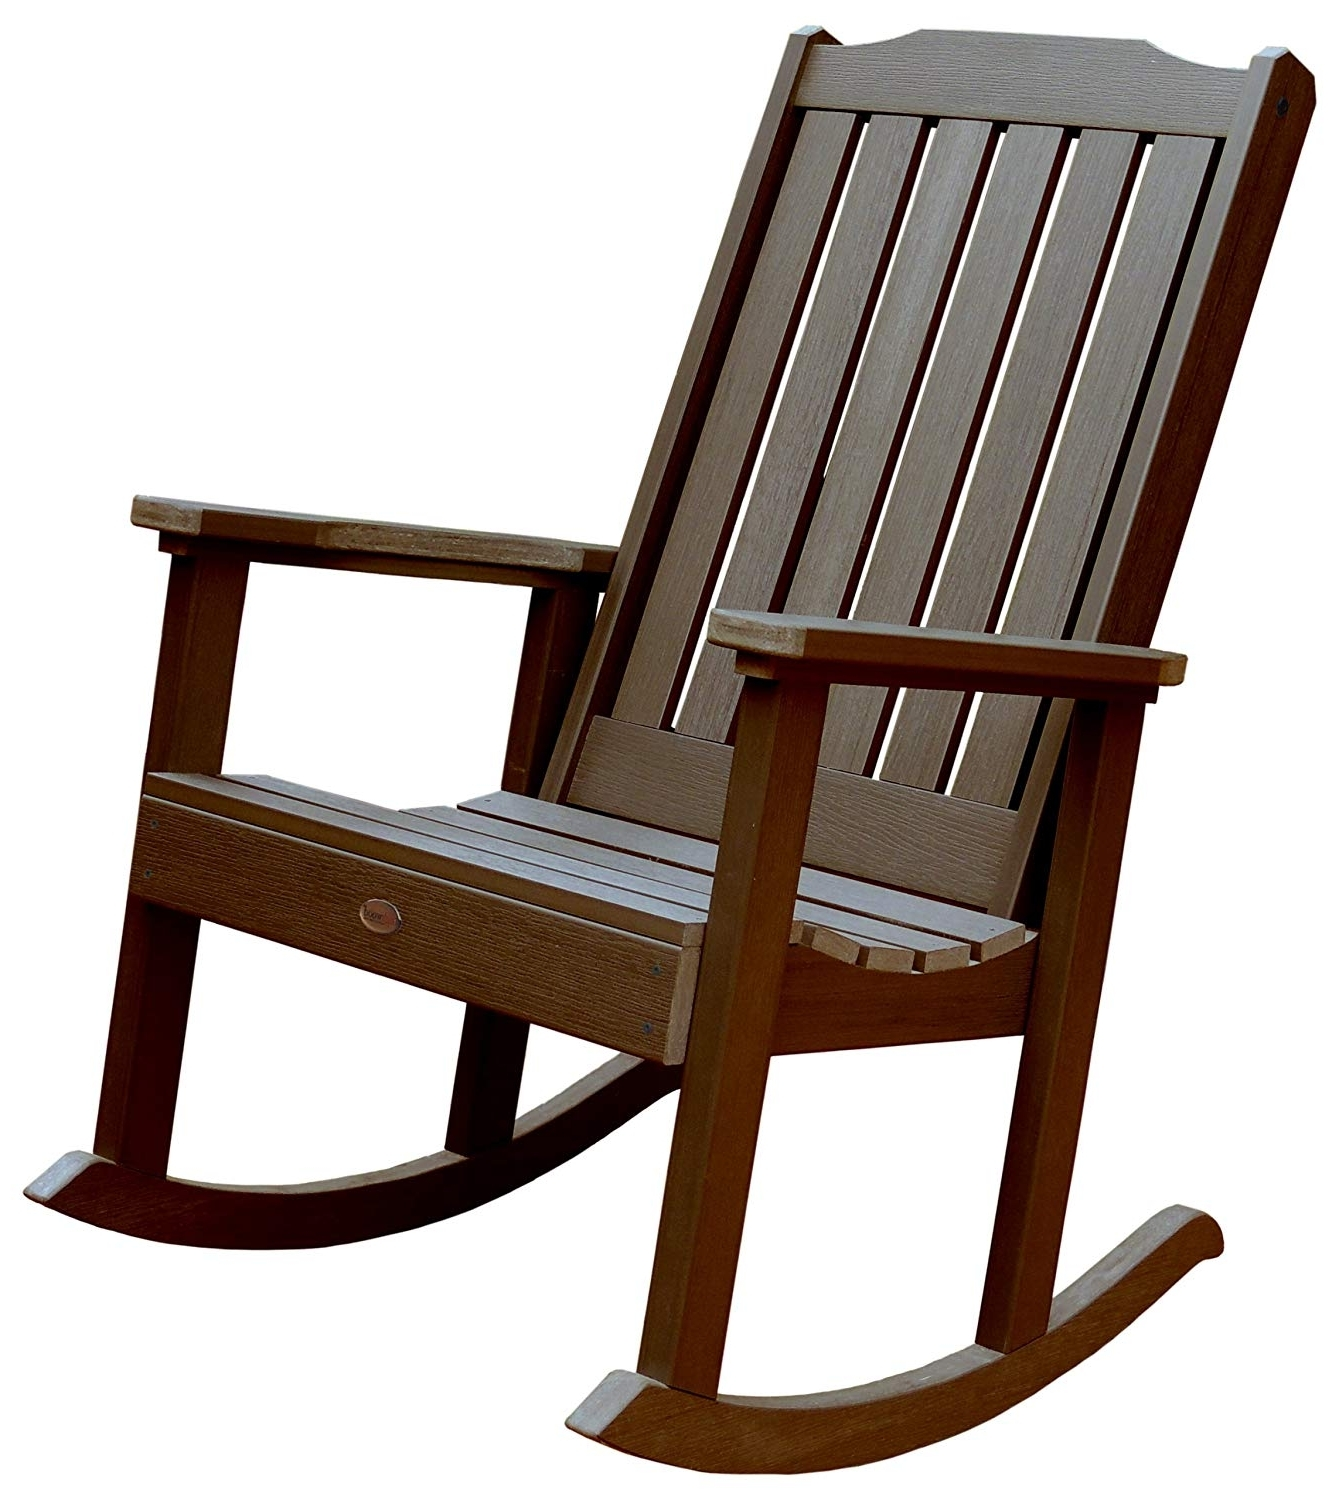 Amazon : Highwood Lehigh Rocking Chair, Weathered Acorn : Patio Regarding Widely Used Rocking Chairs (View 8 of 15)